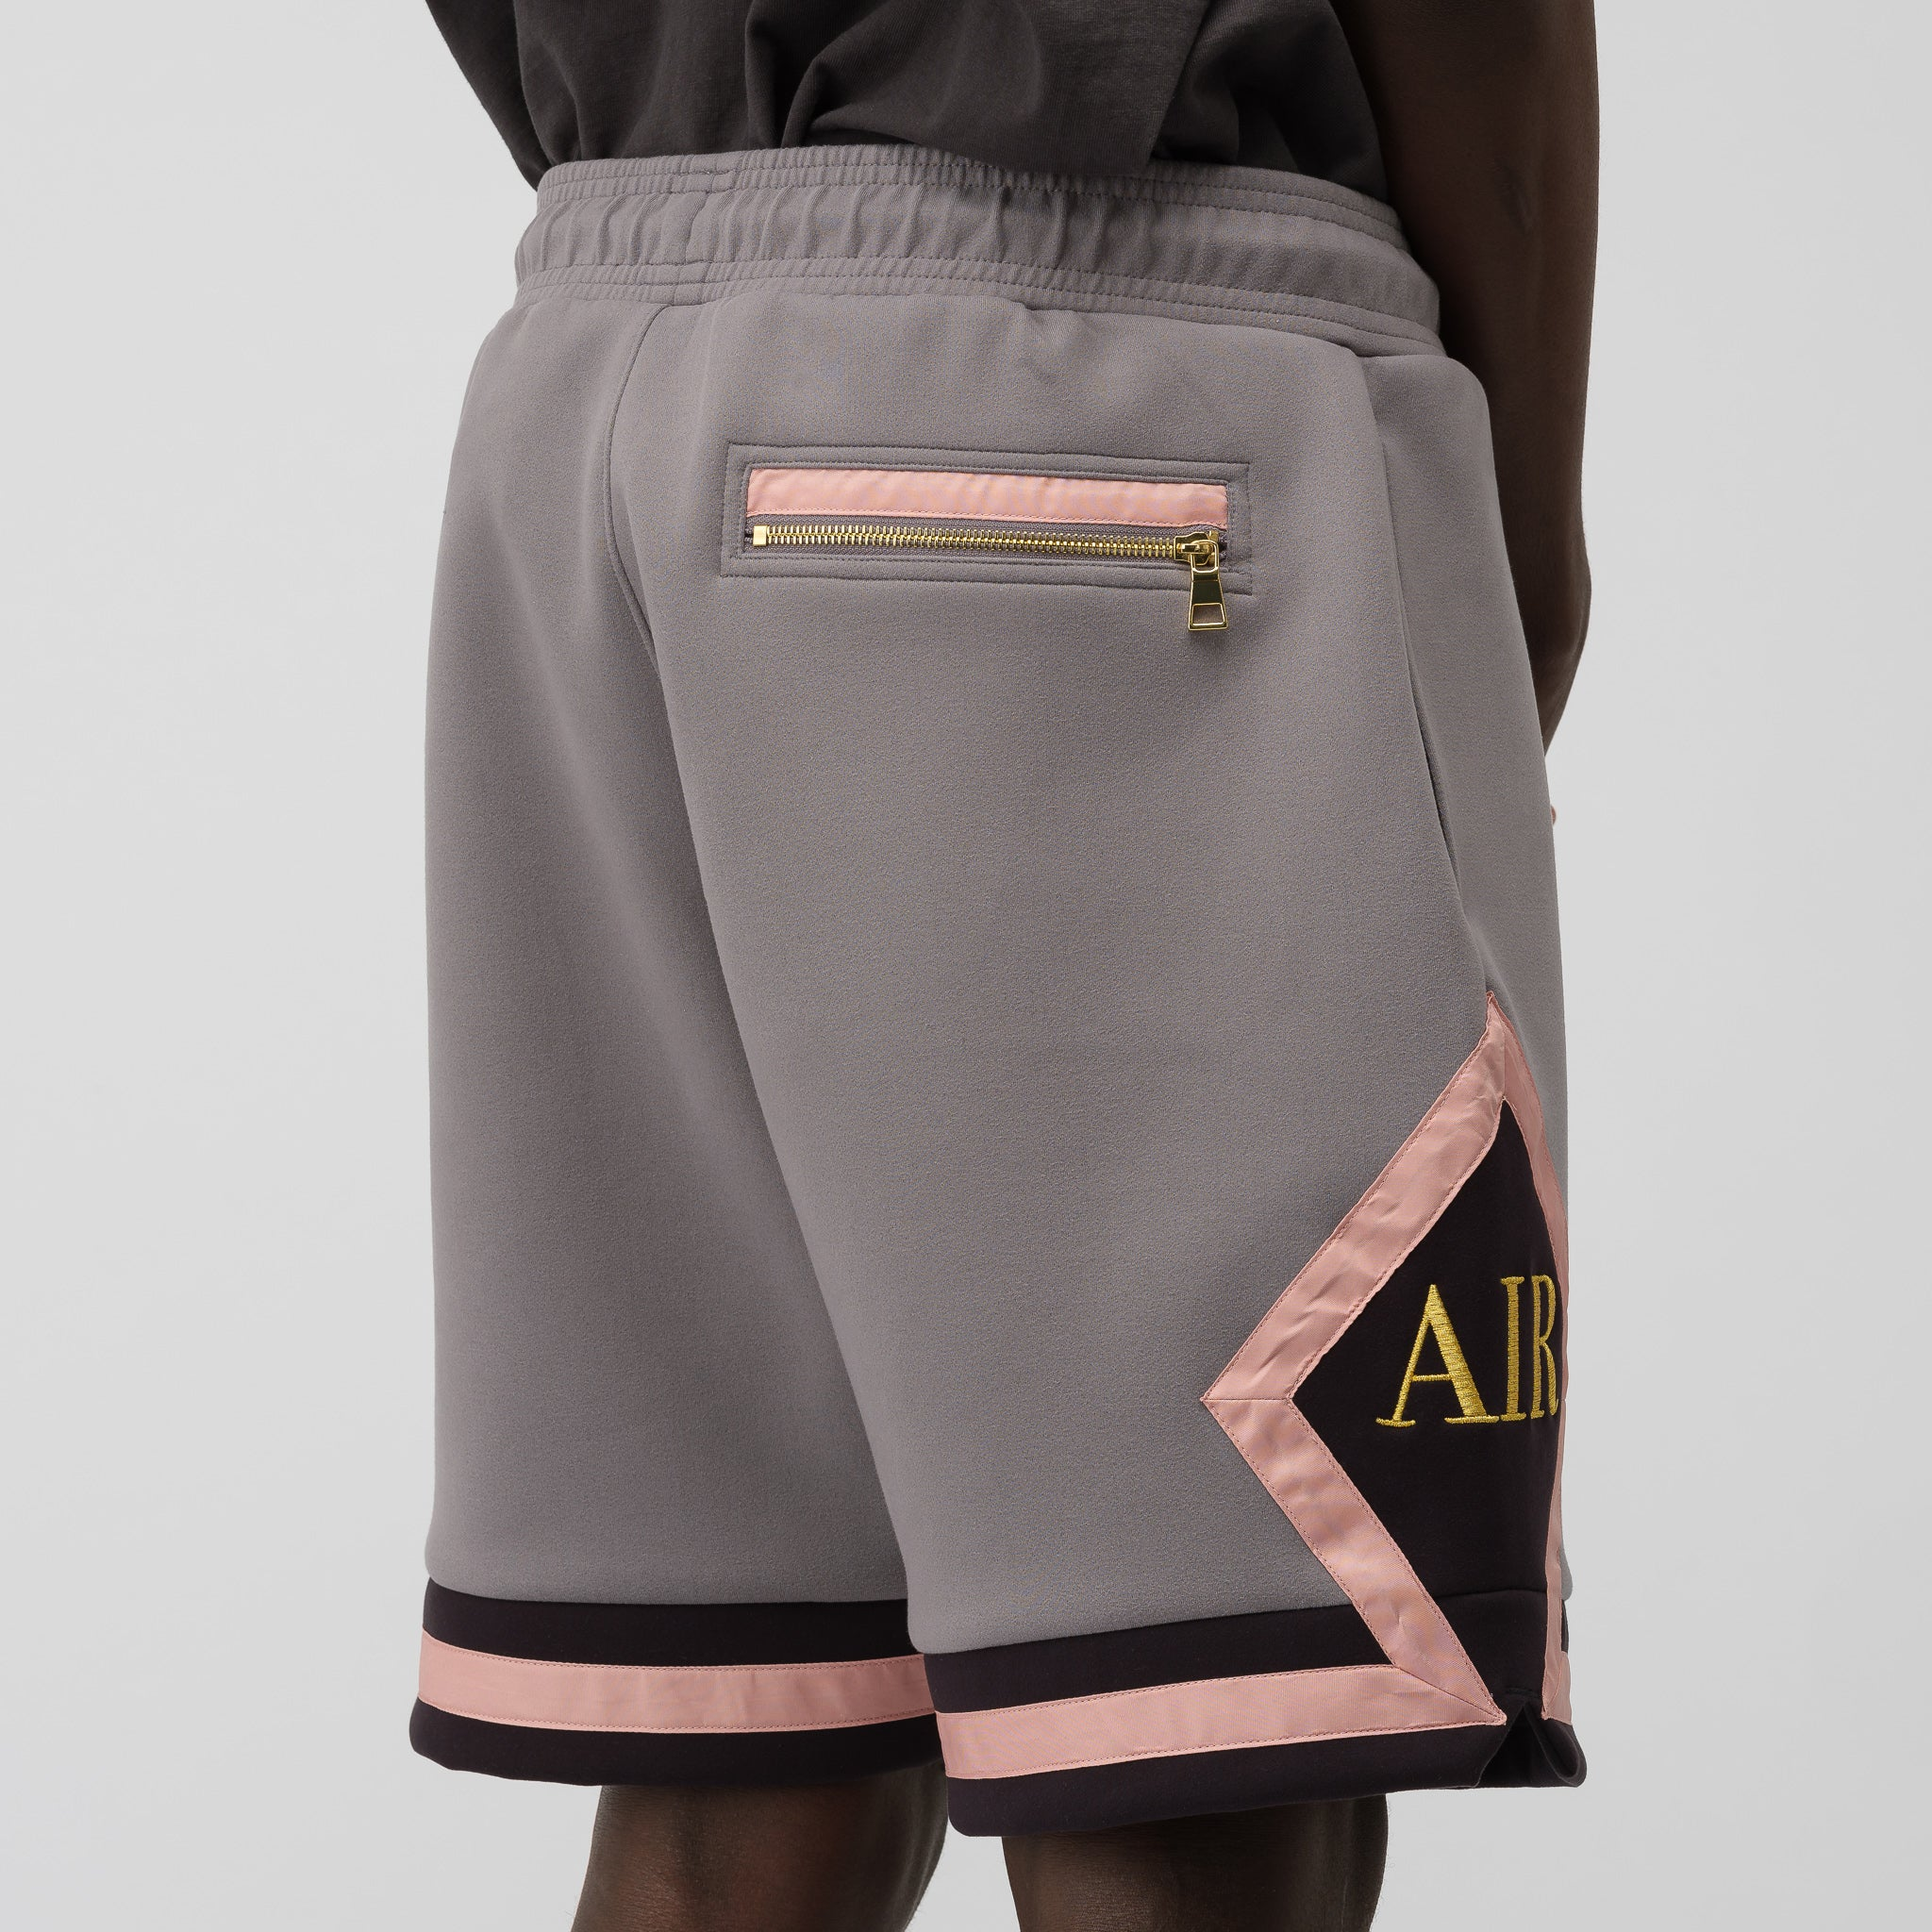 Remastered Diamond Shorts in Gunsmoke